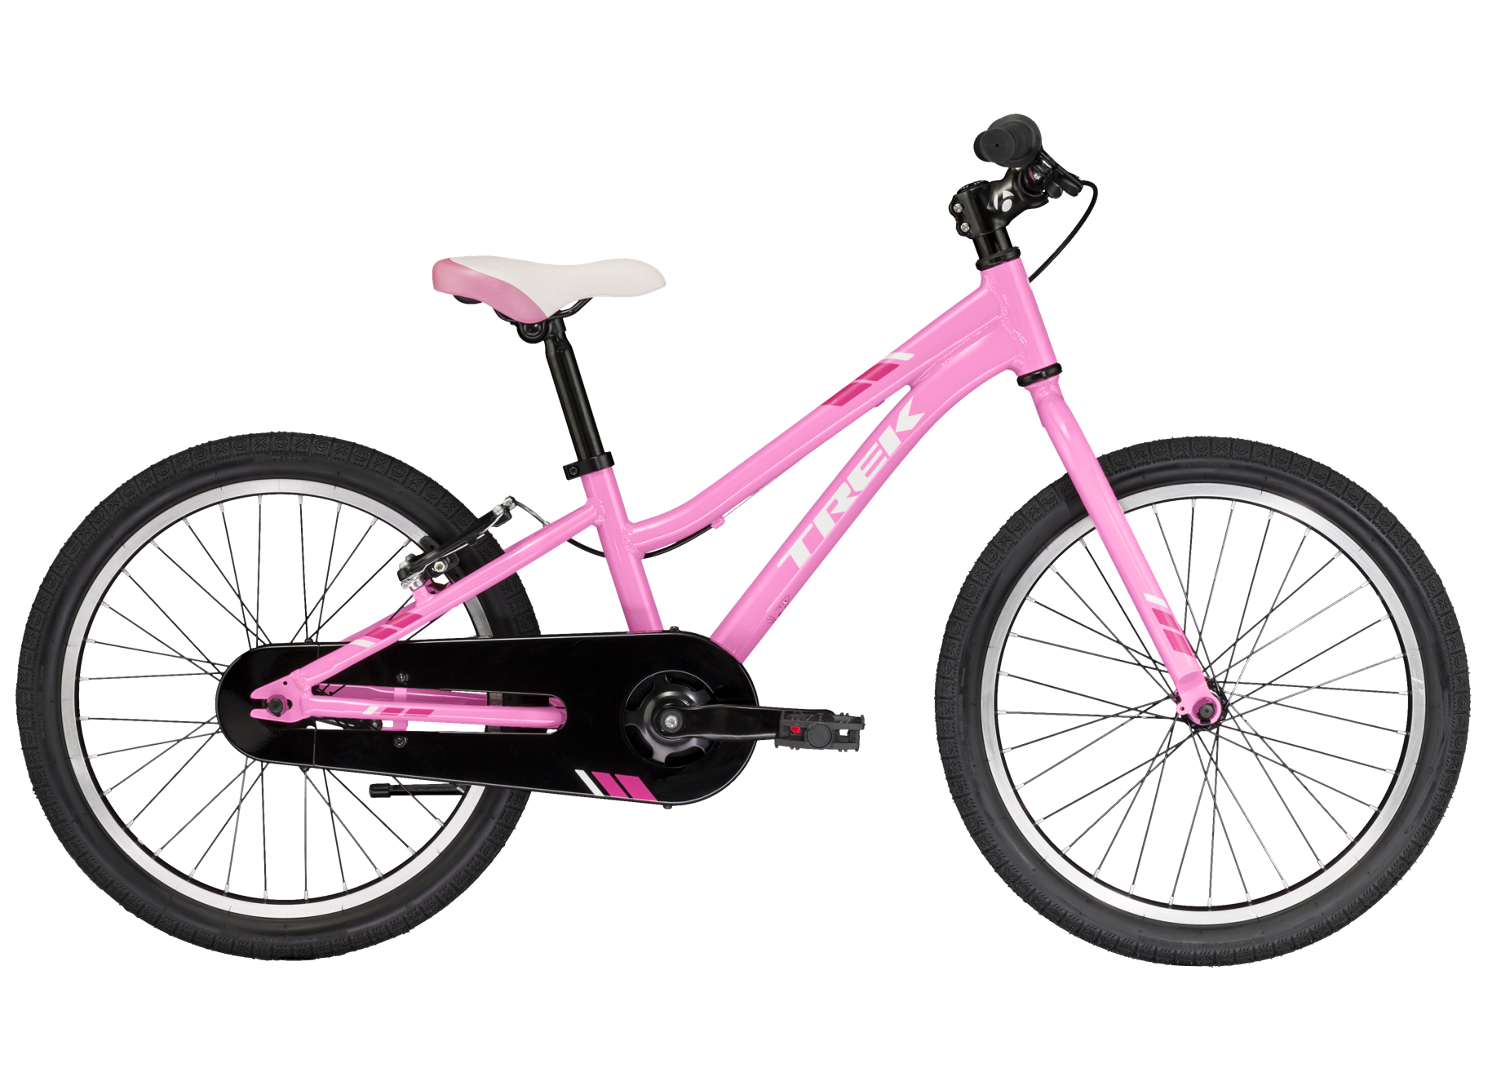 svg black and white library transparent bike pink #116546085